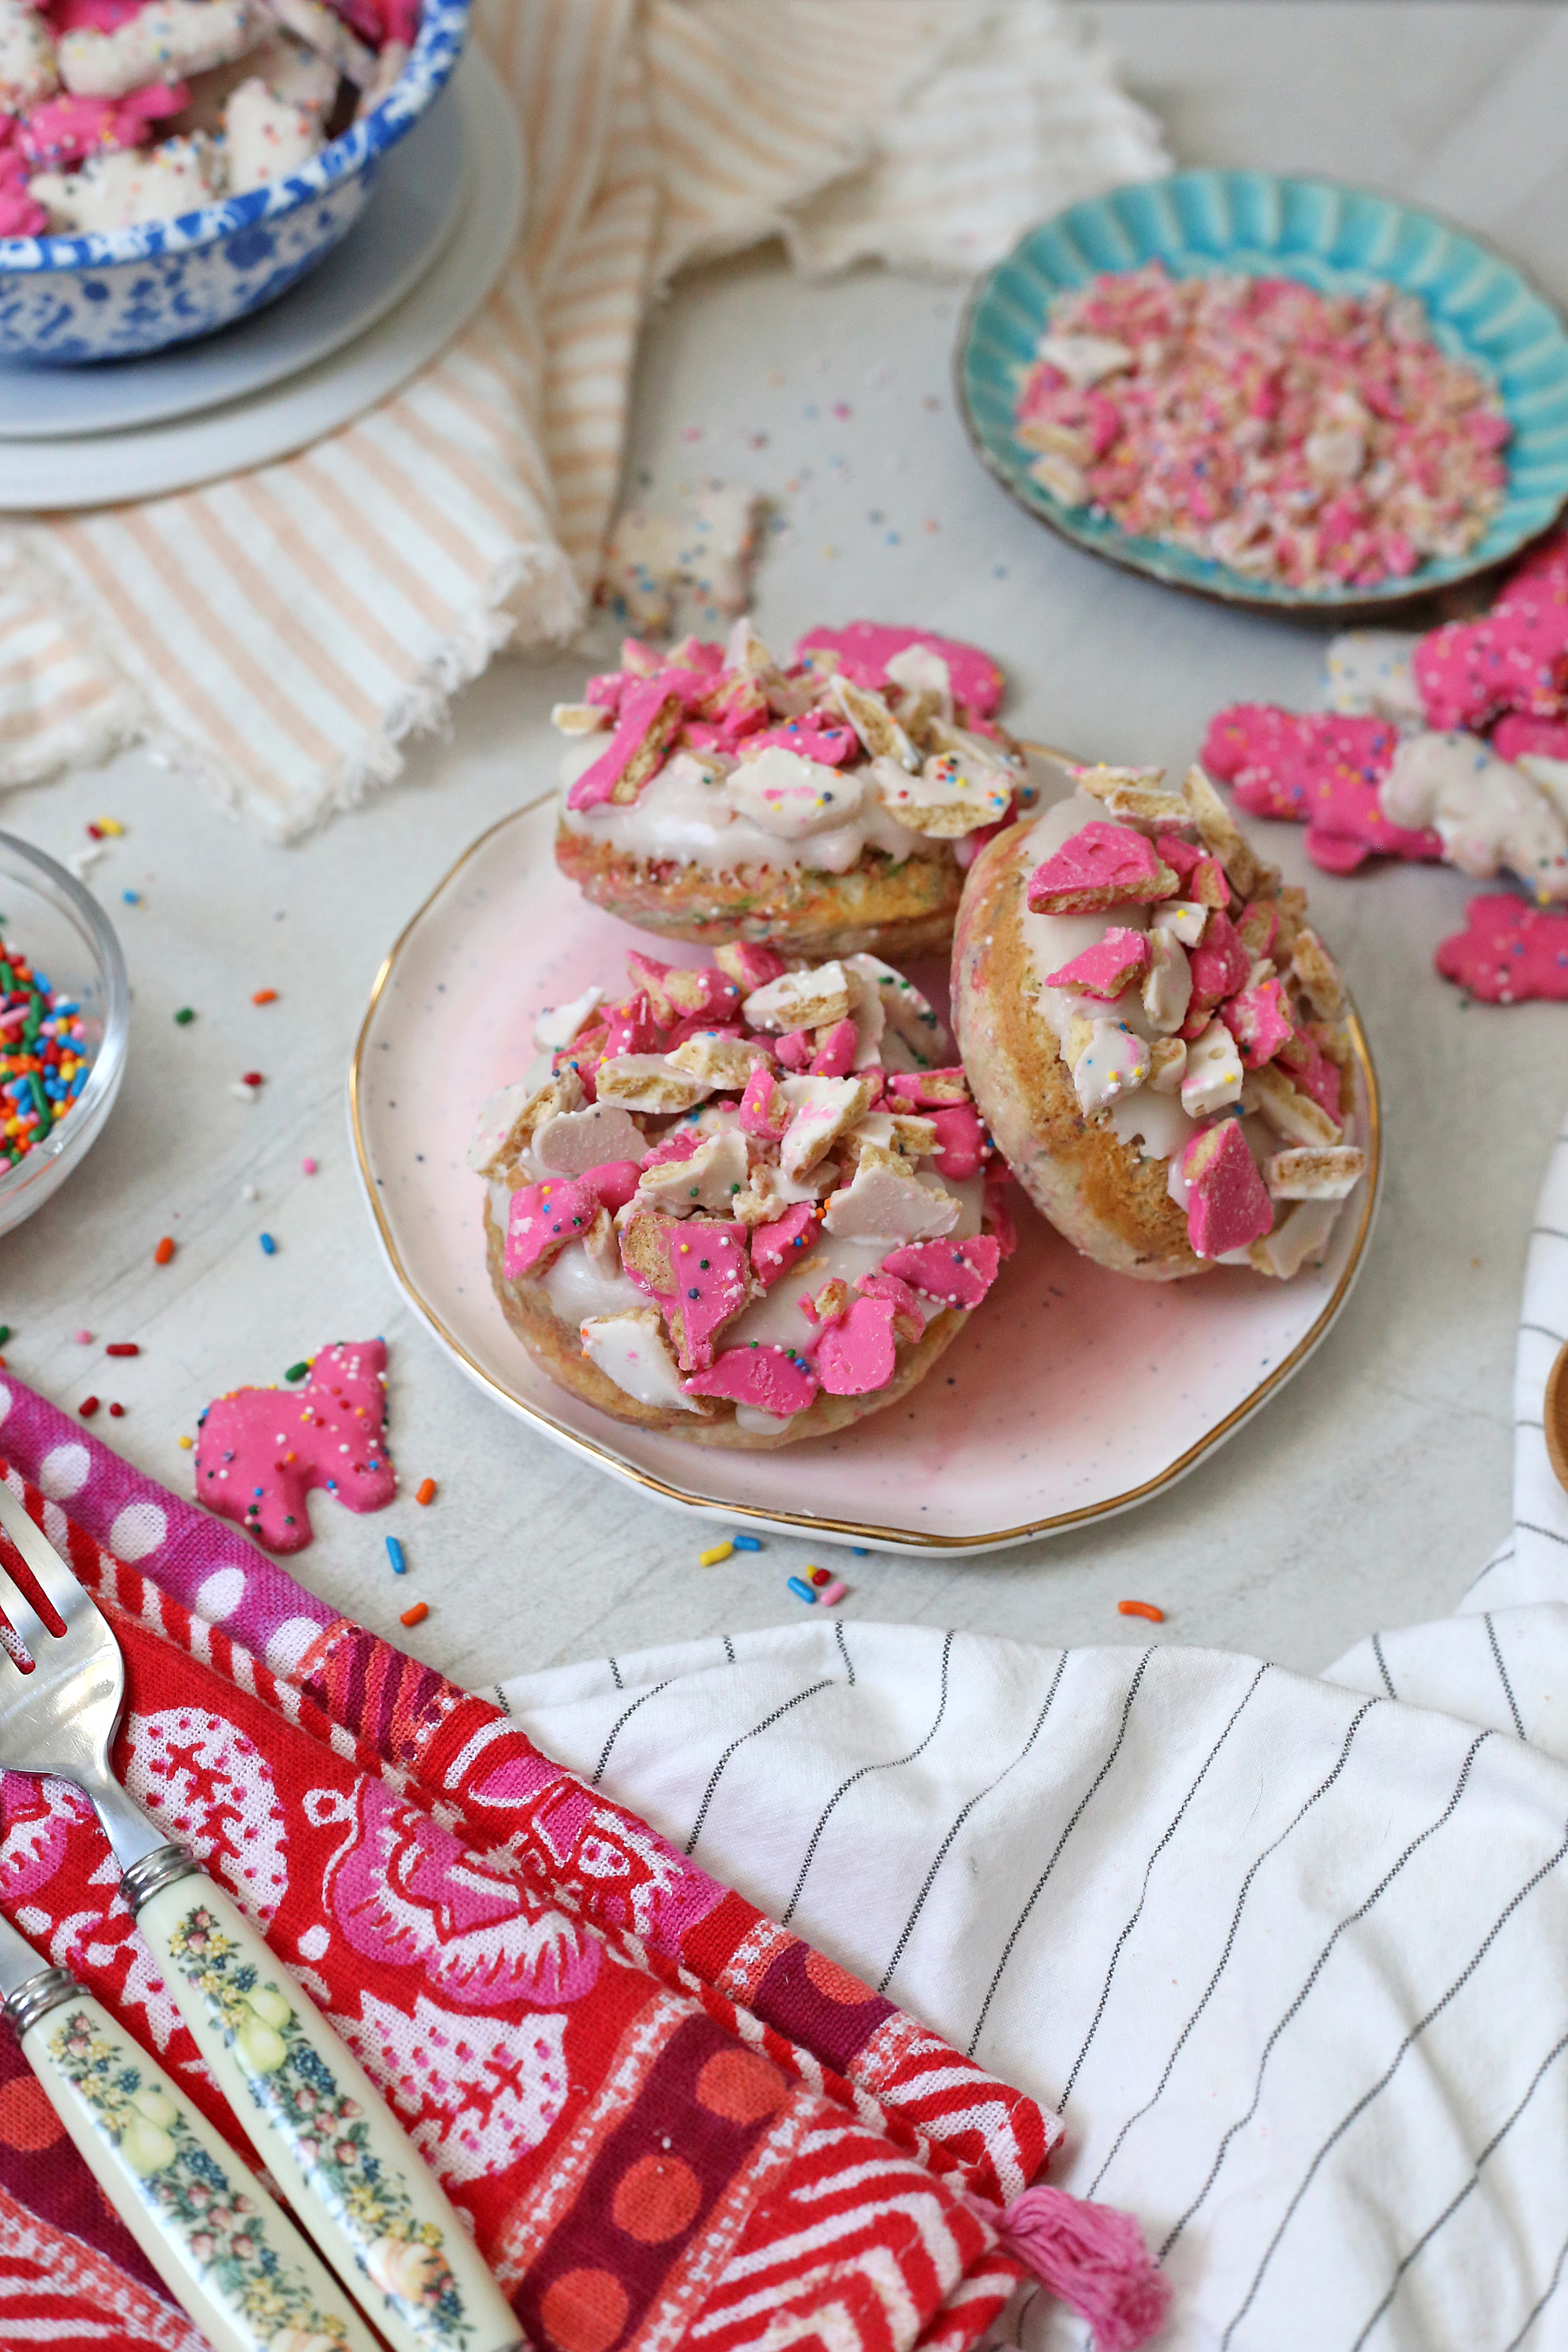 Frosted Animal Cracker Donuts via Unusuallylovely.com